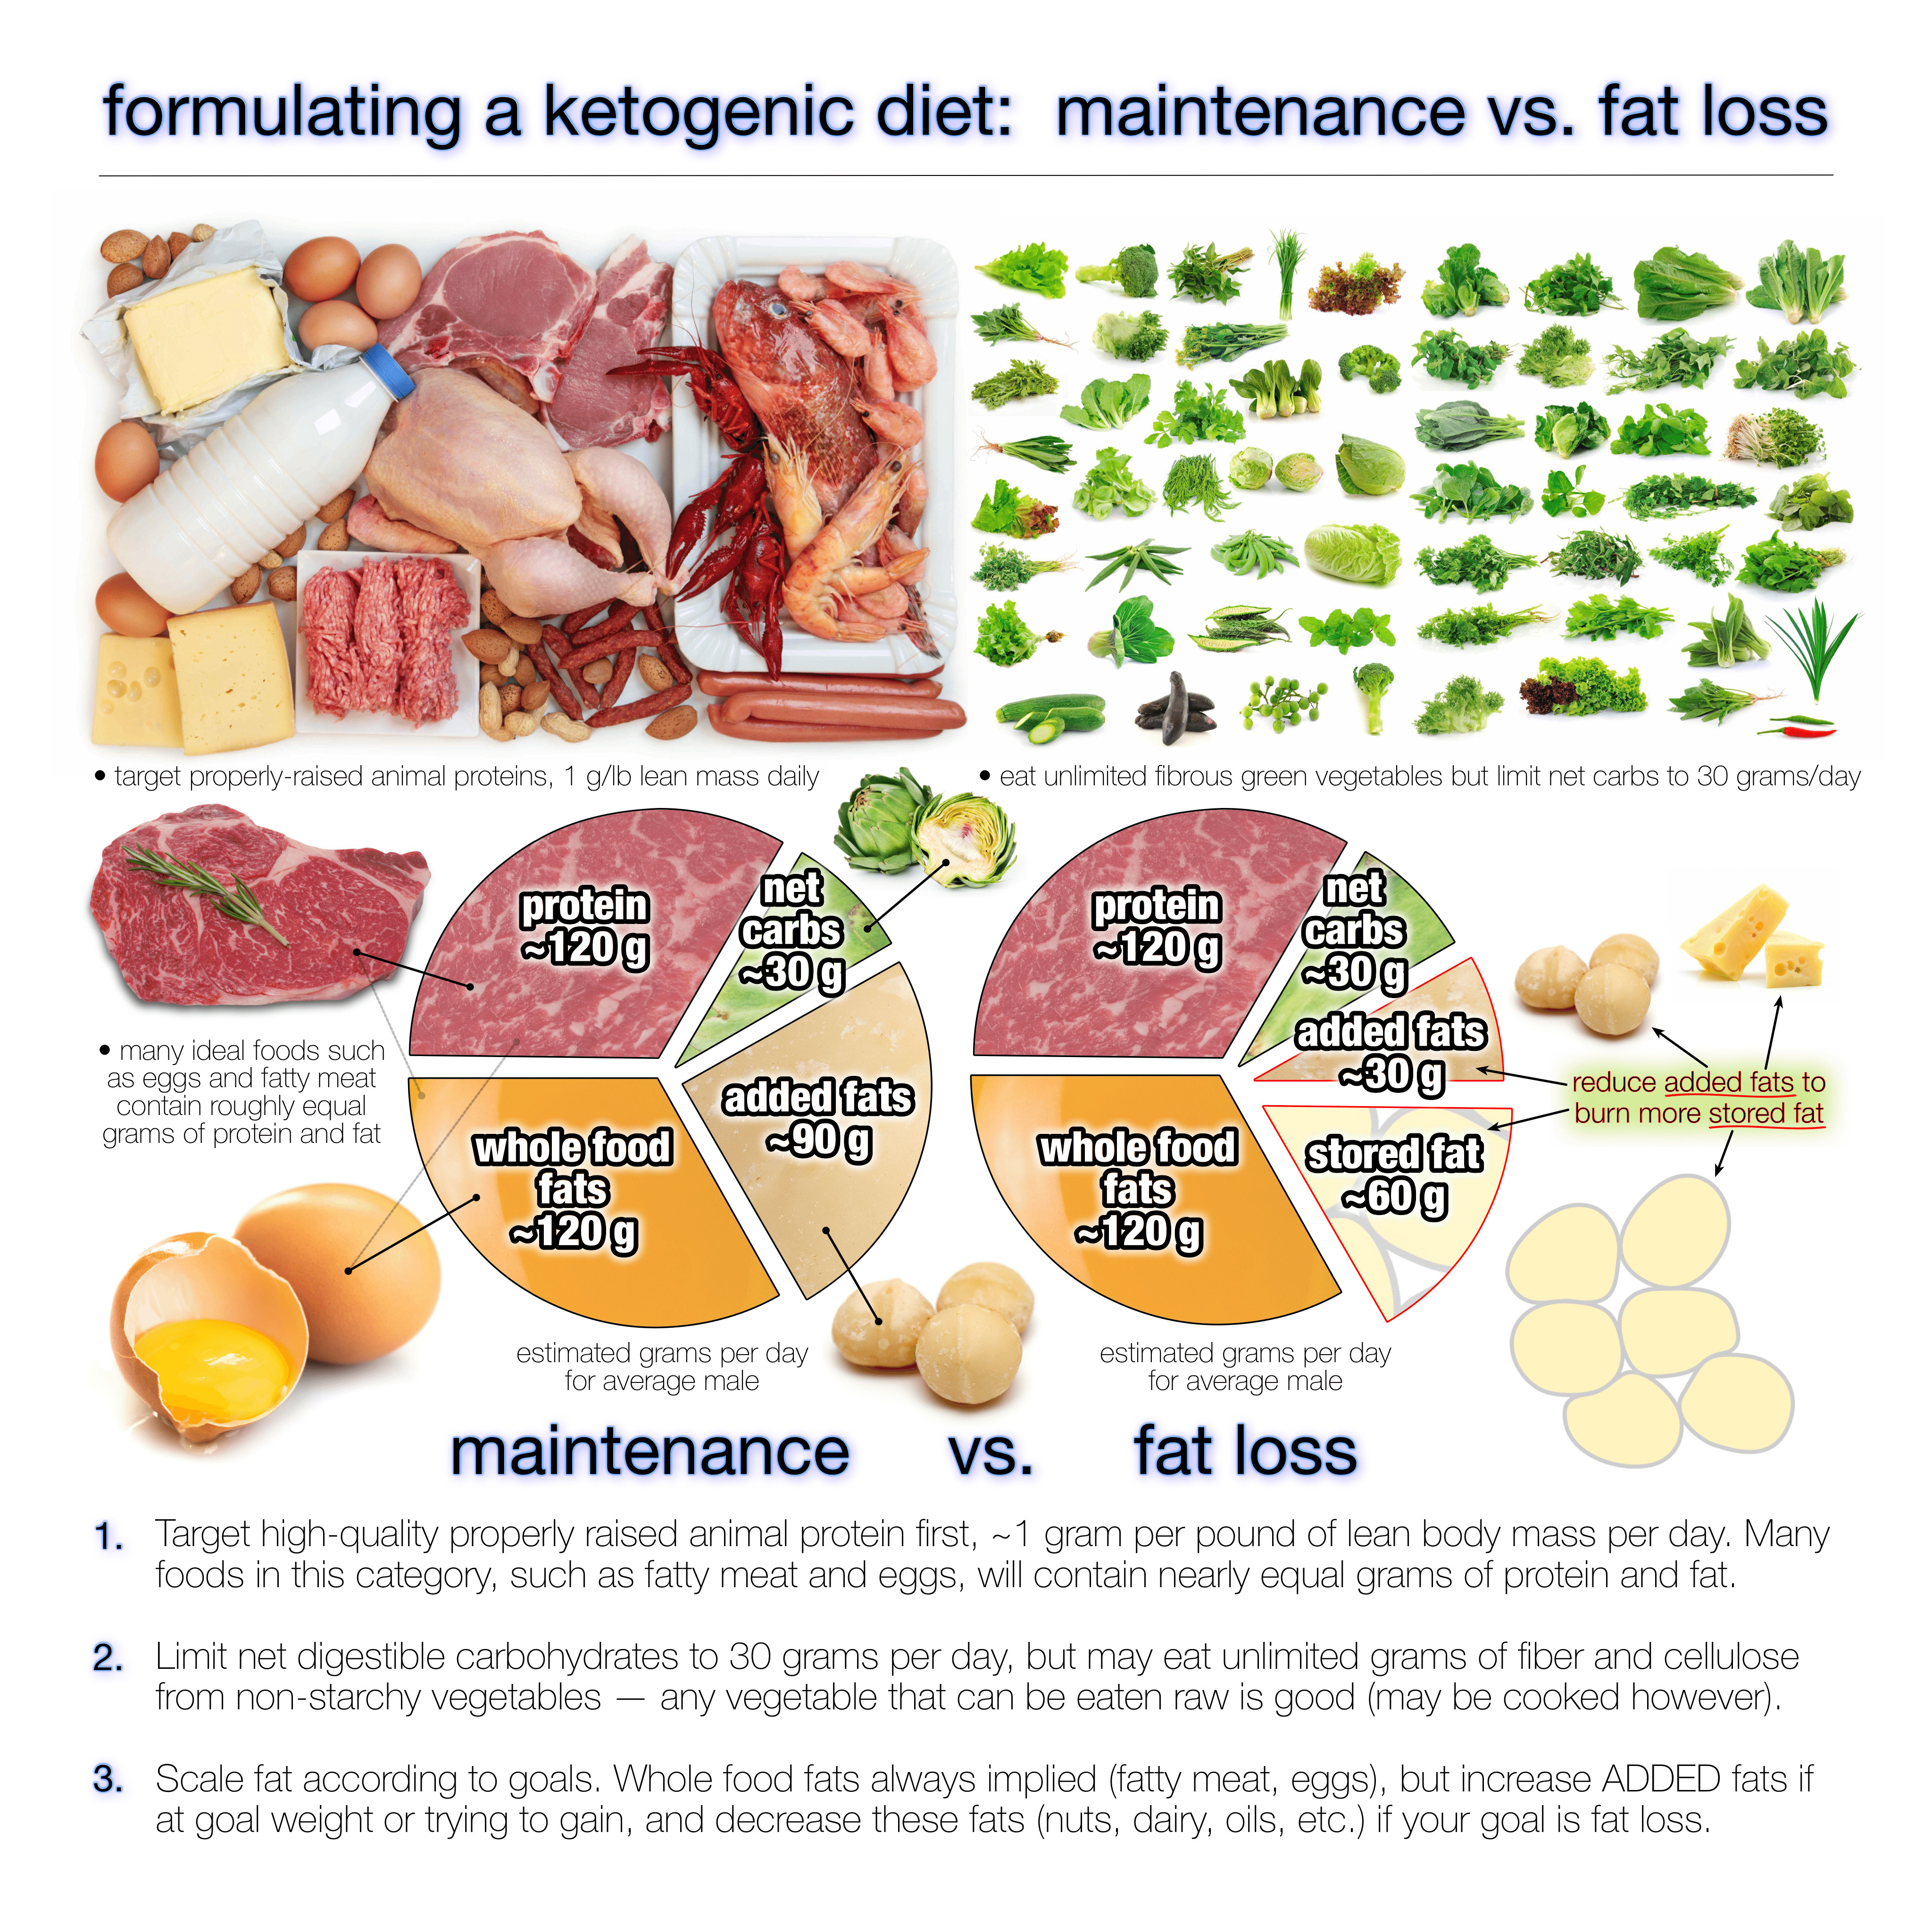 Does Keto Diet Raise Cholesterol  How Much Fat Should You Eat on a Ketogenic Diet Diet Doctor